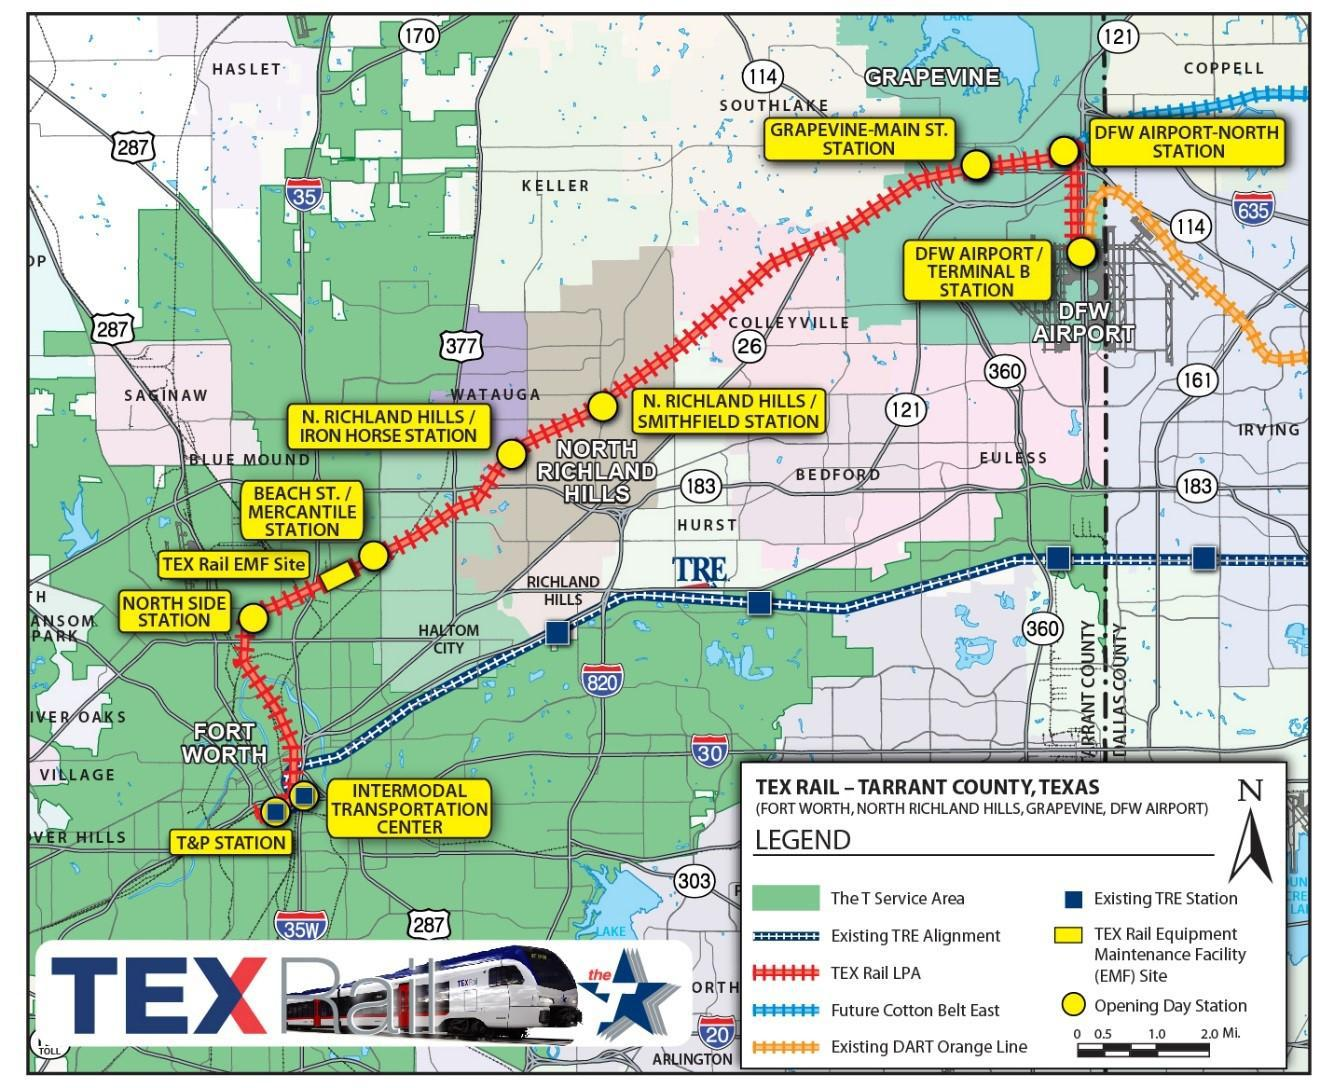 By 2018, In Tarrant County, You Can Take A Train To Catch ... on dallas map, dfw cities, central texas counties map, tarrant co zip code map, phoenix city map, dfw metroplex counties, large northeast texas map, duncanville isd map, cross country hwy map, dfw area counties, phoenix az map, arkansas section township range map,